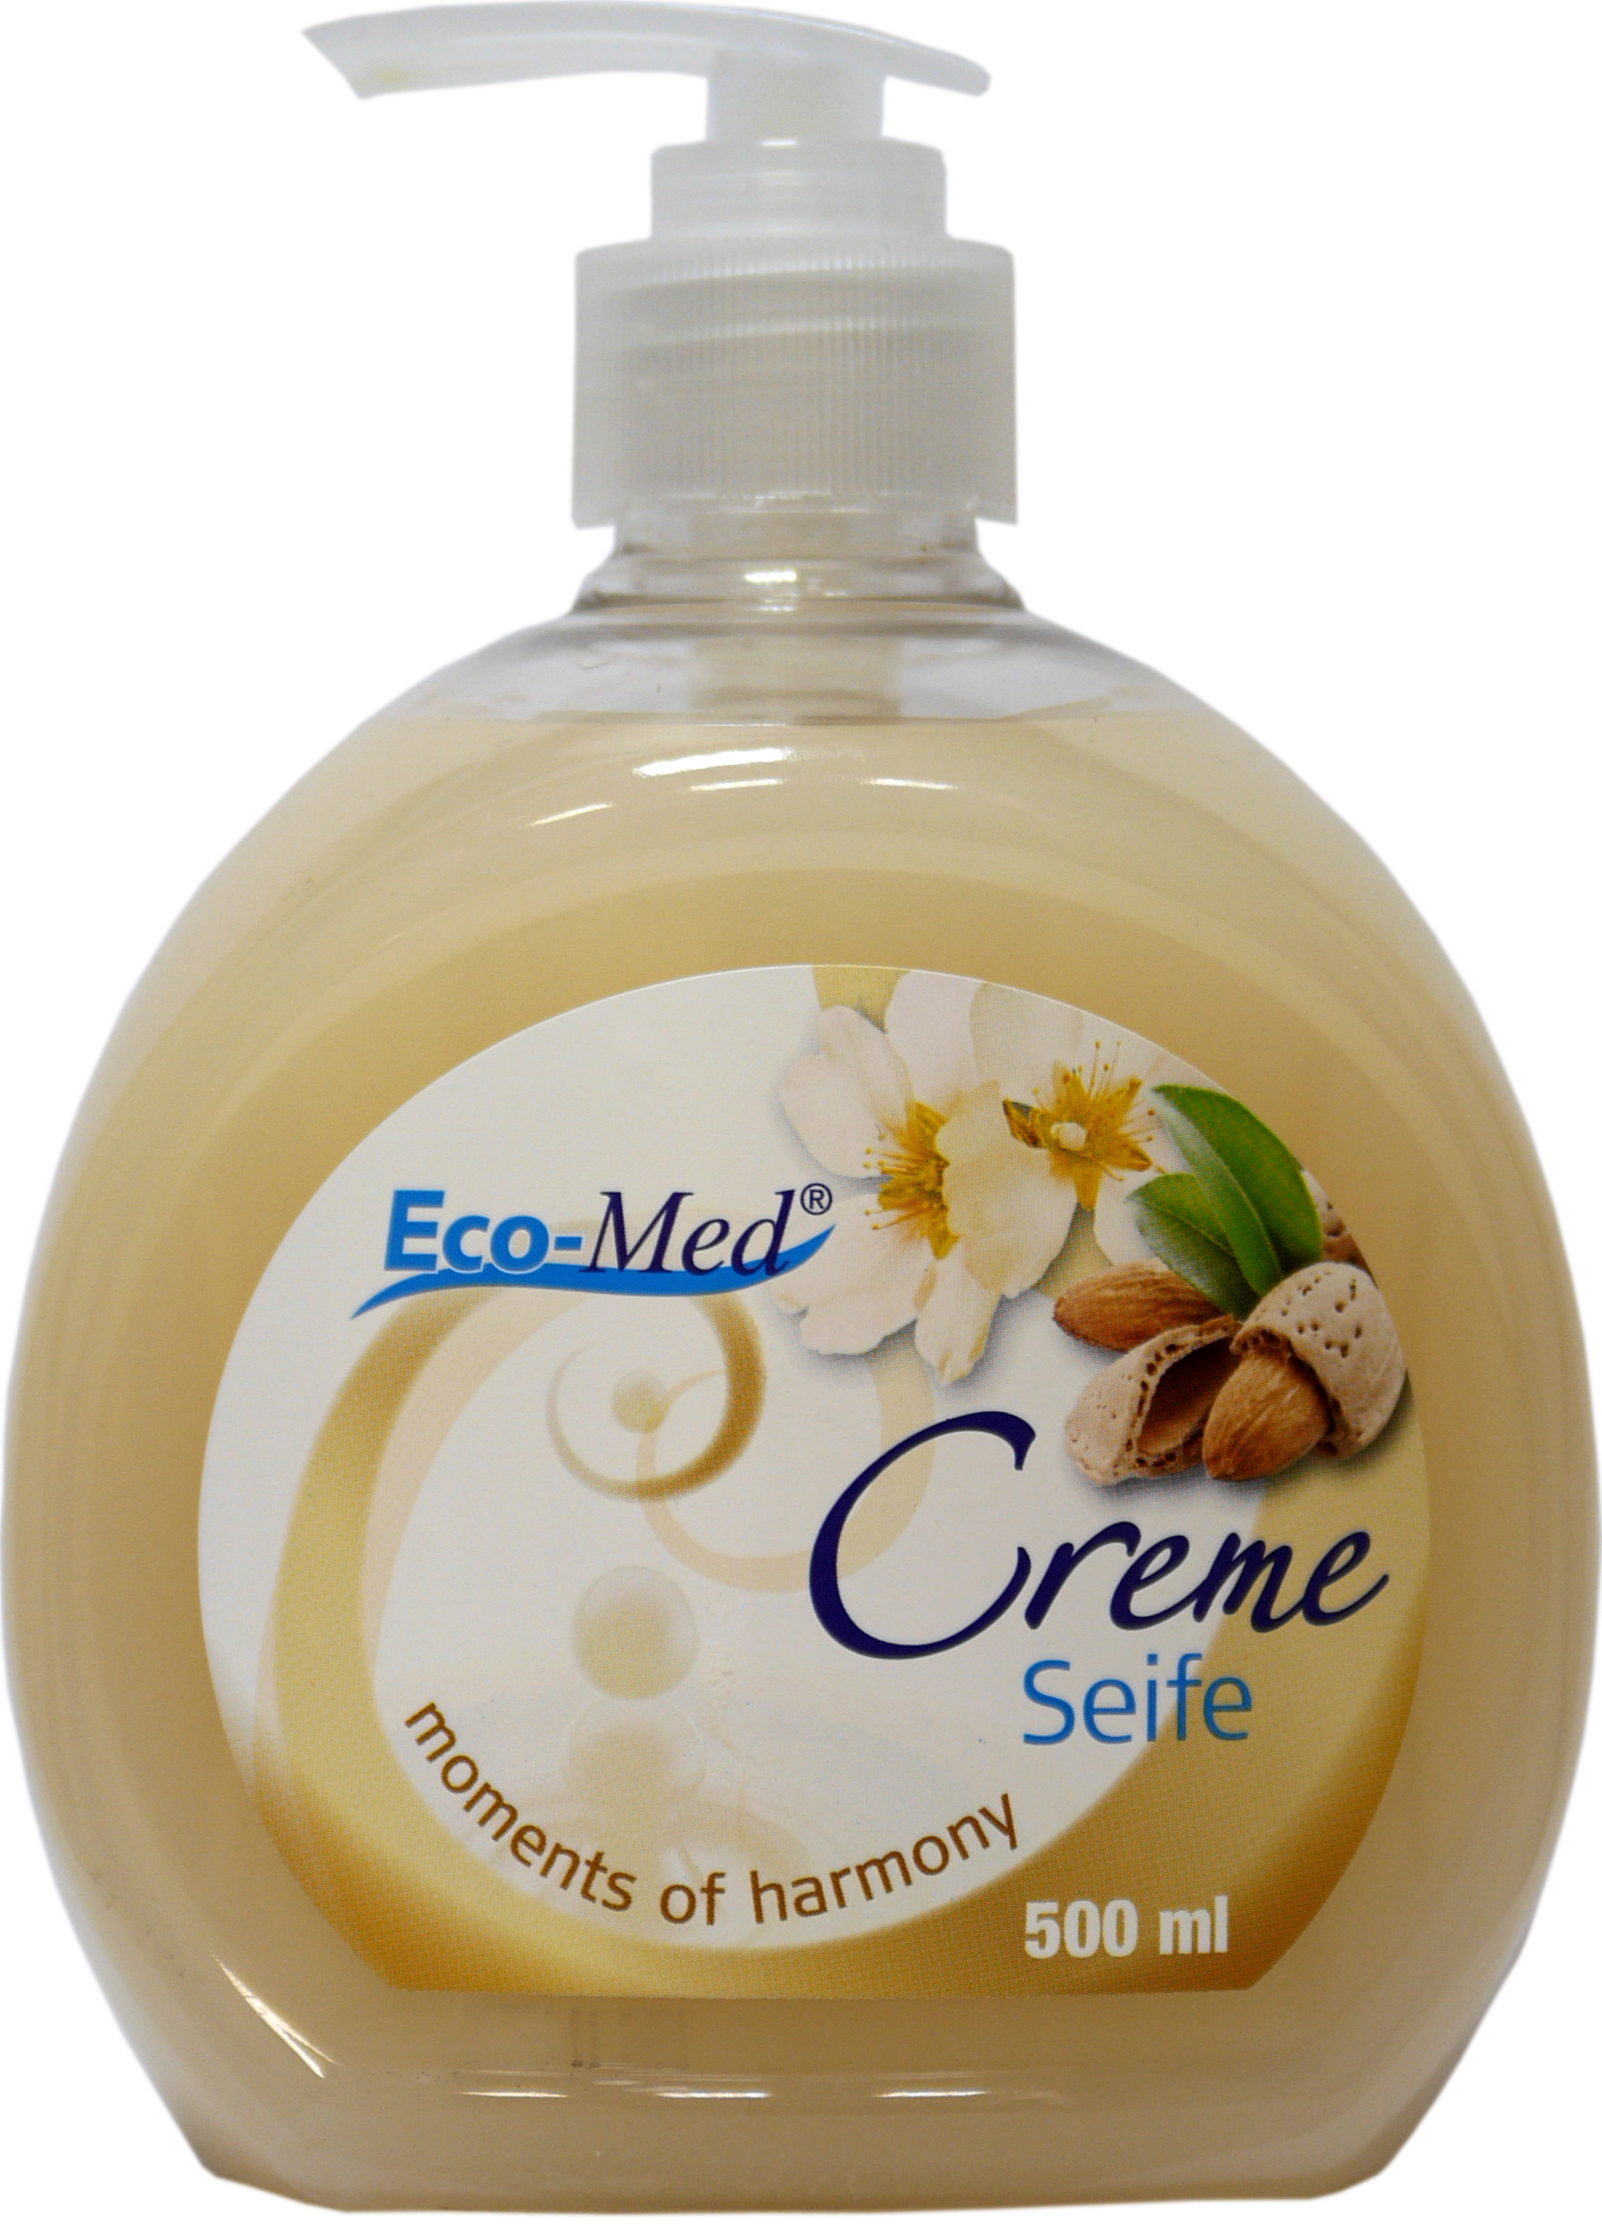 01601 - Eco-Med Cremeseife 500 ml Moments of Harmony